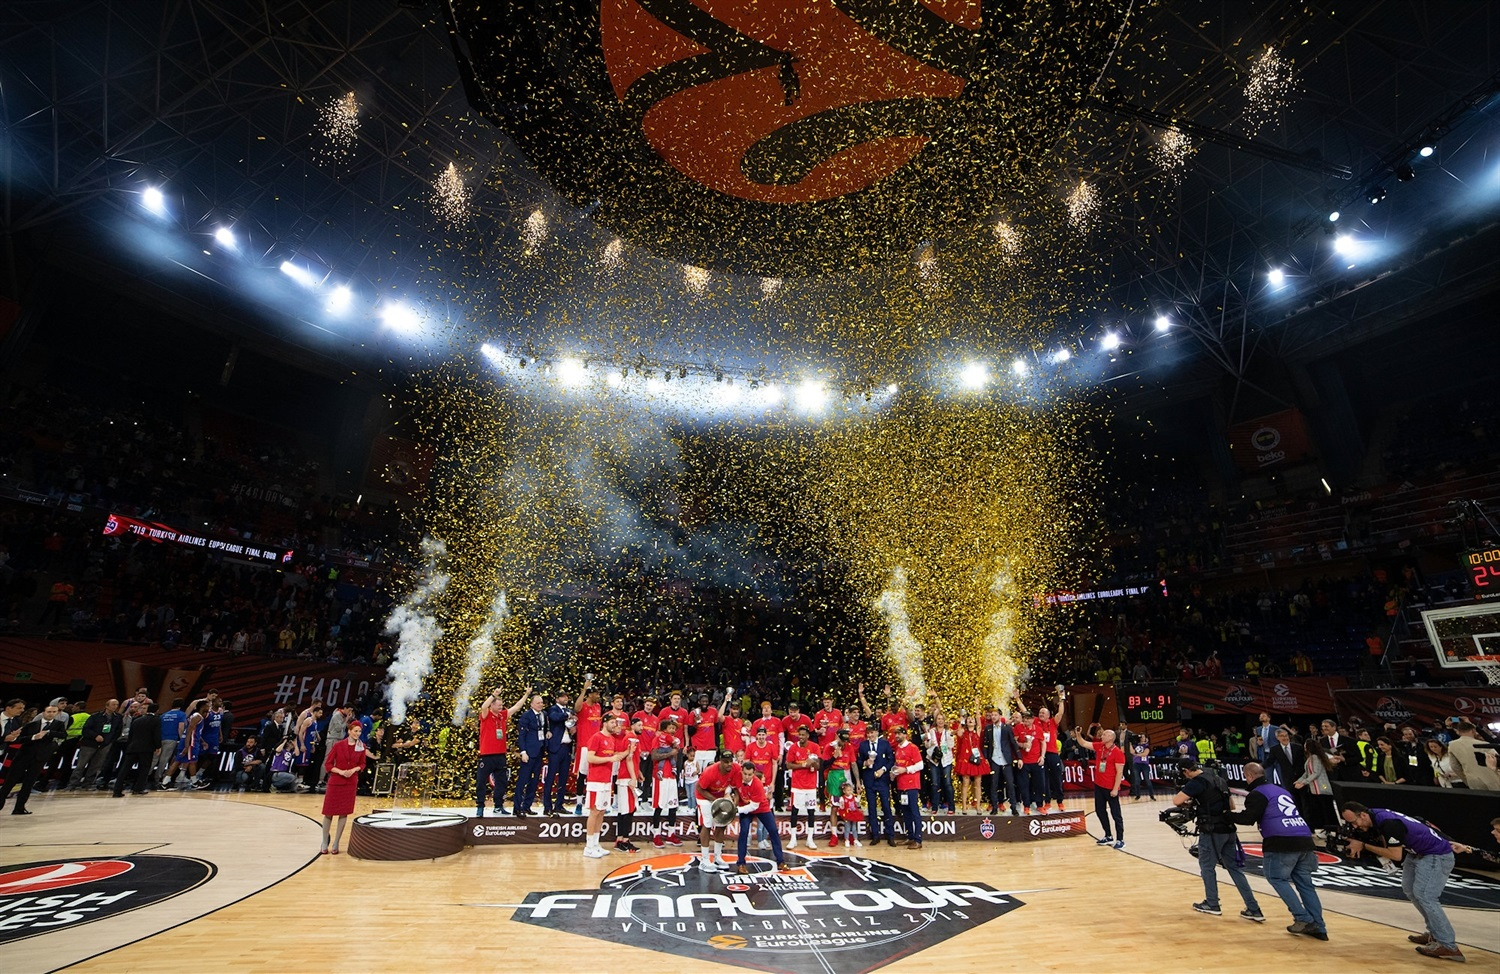 CSKA Moscow Champ - Final Four Vitoria-Gasteiz 2019 - EB18